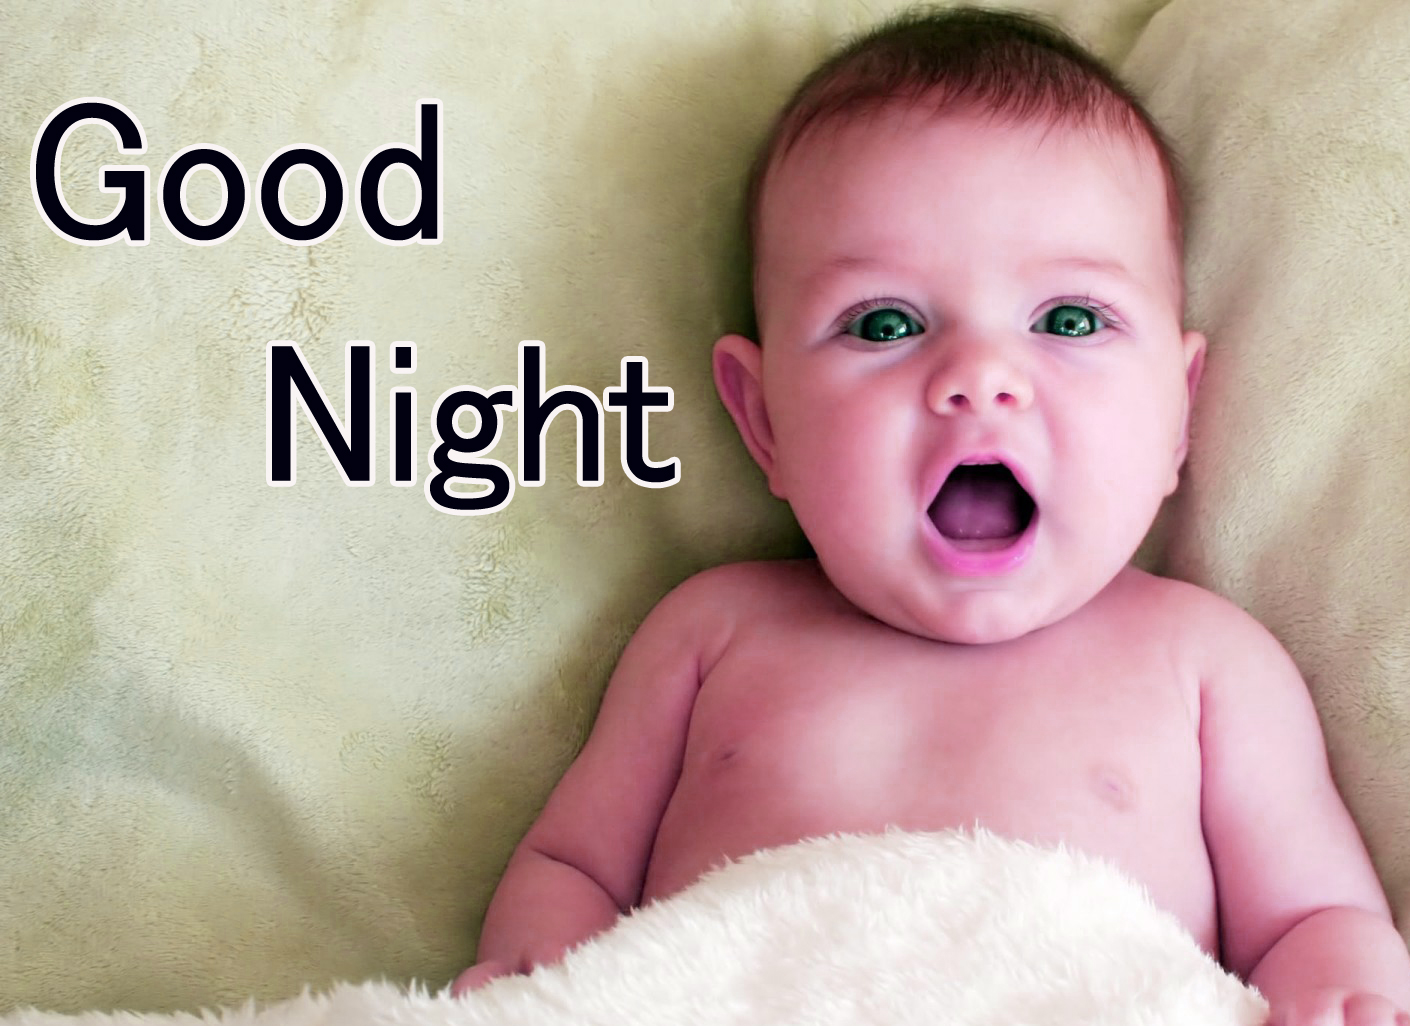 GOOD NIGHT IMAGES WITH CUTE BABY BOYS & GIRLS PICS DOWNLOAD FOR WHATSAPP